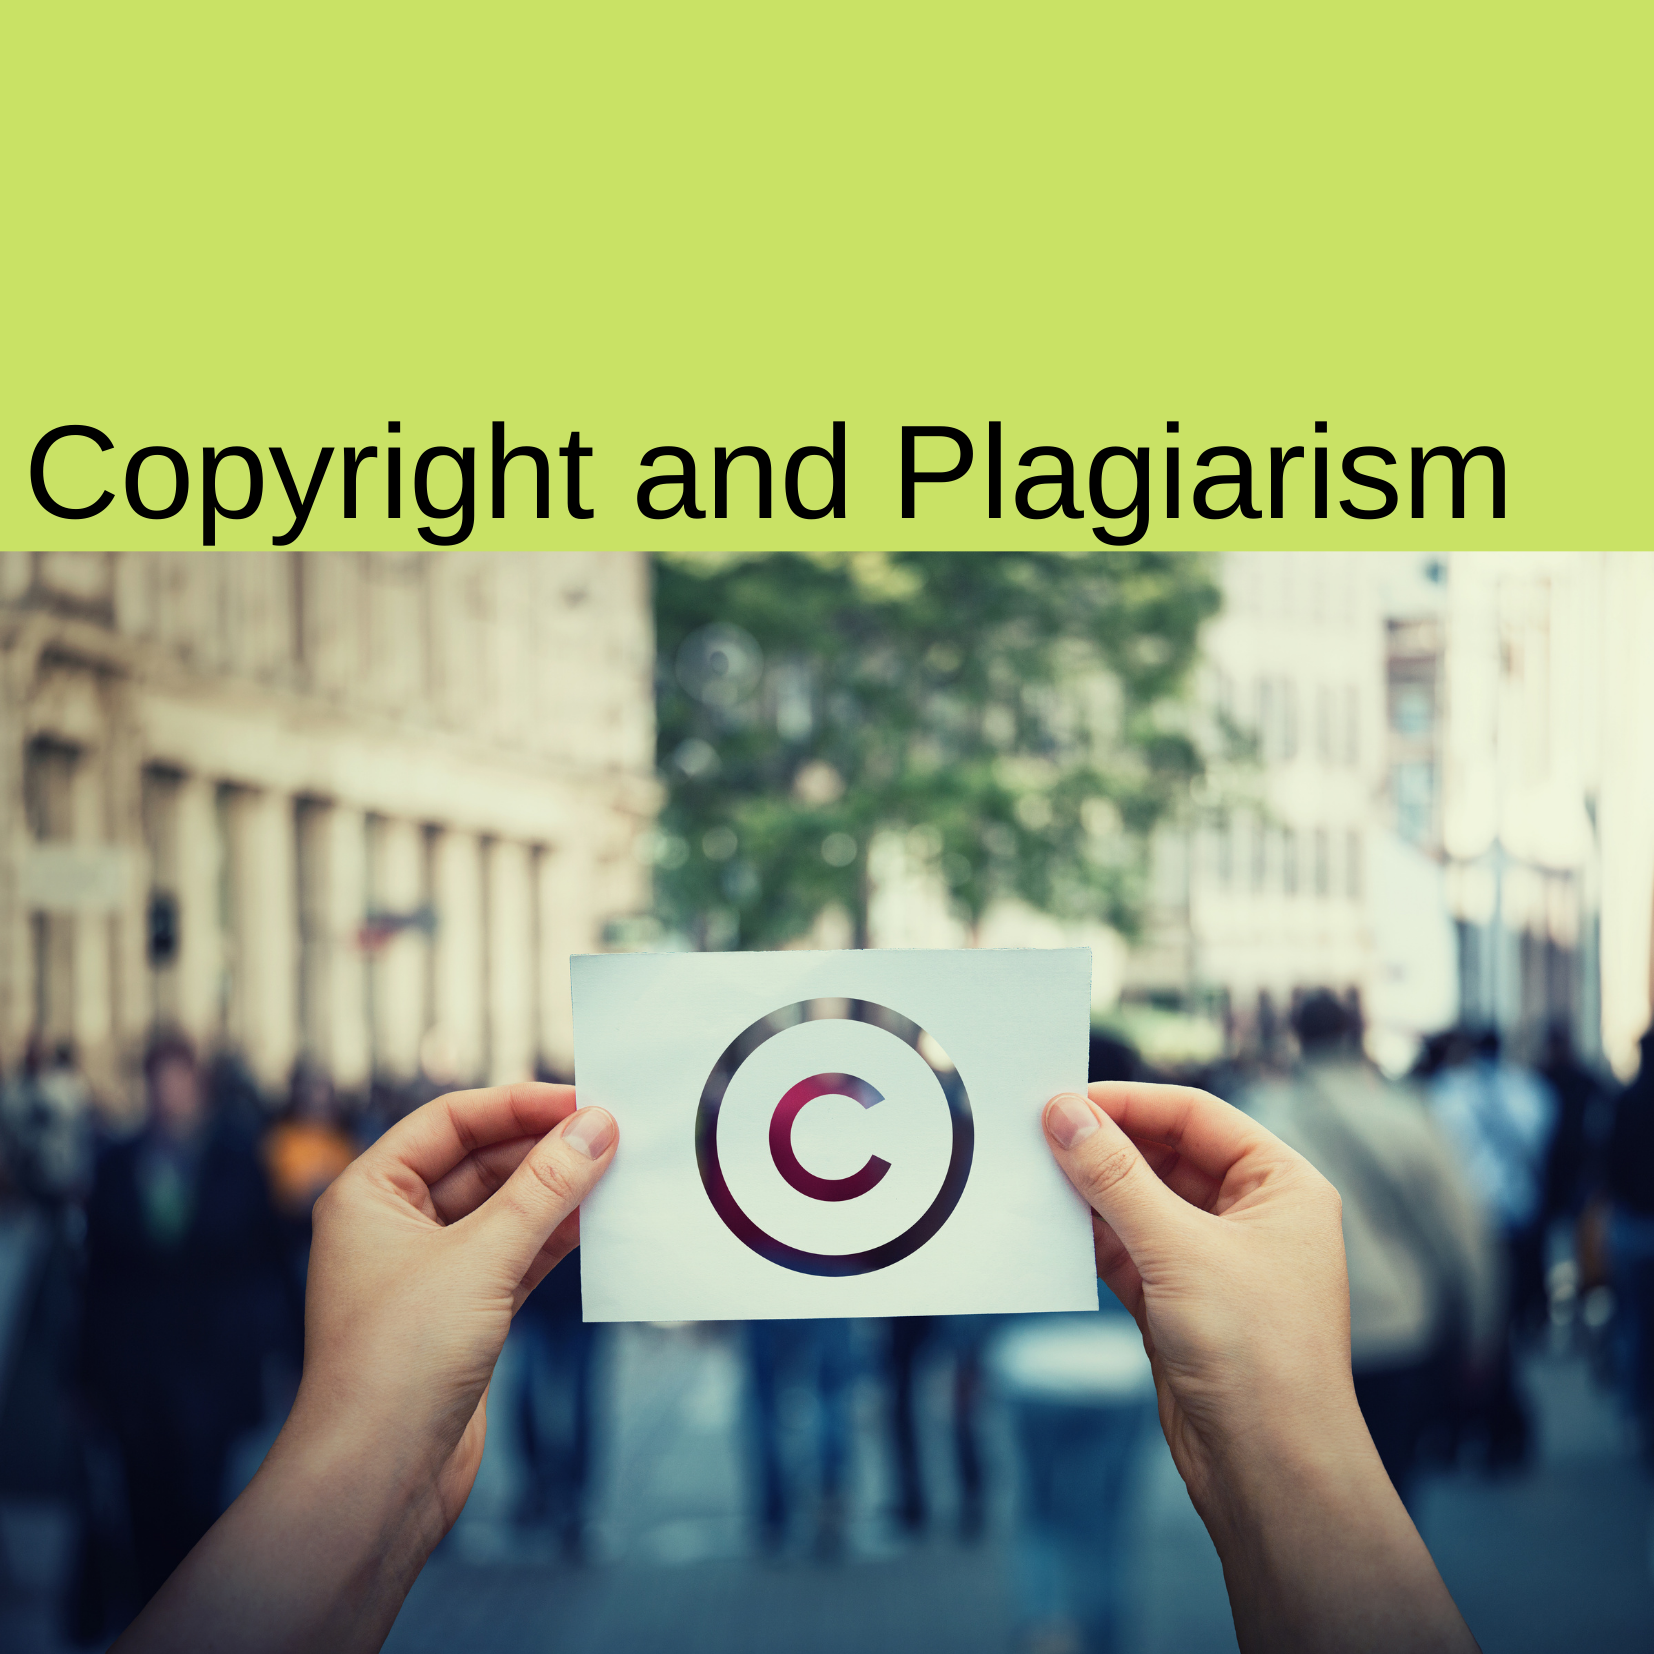 Copyright and Plagiarism Guide